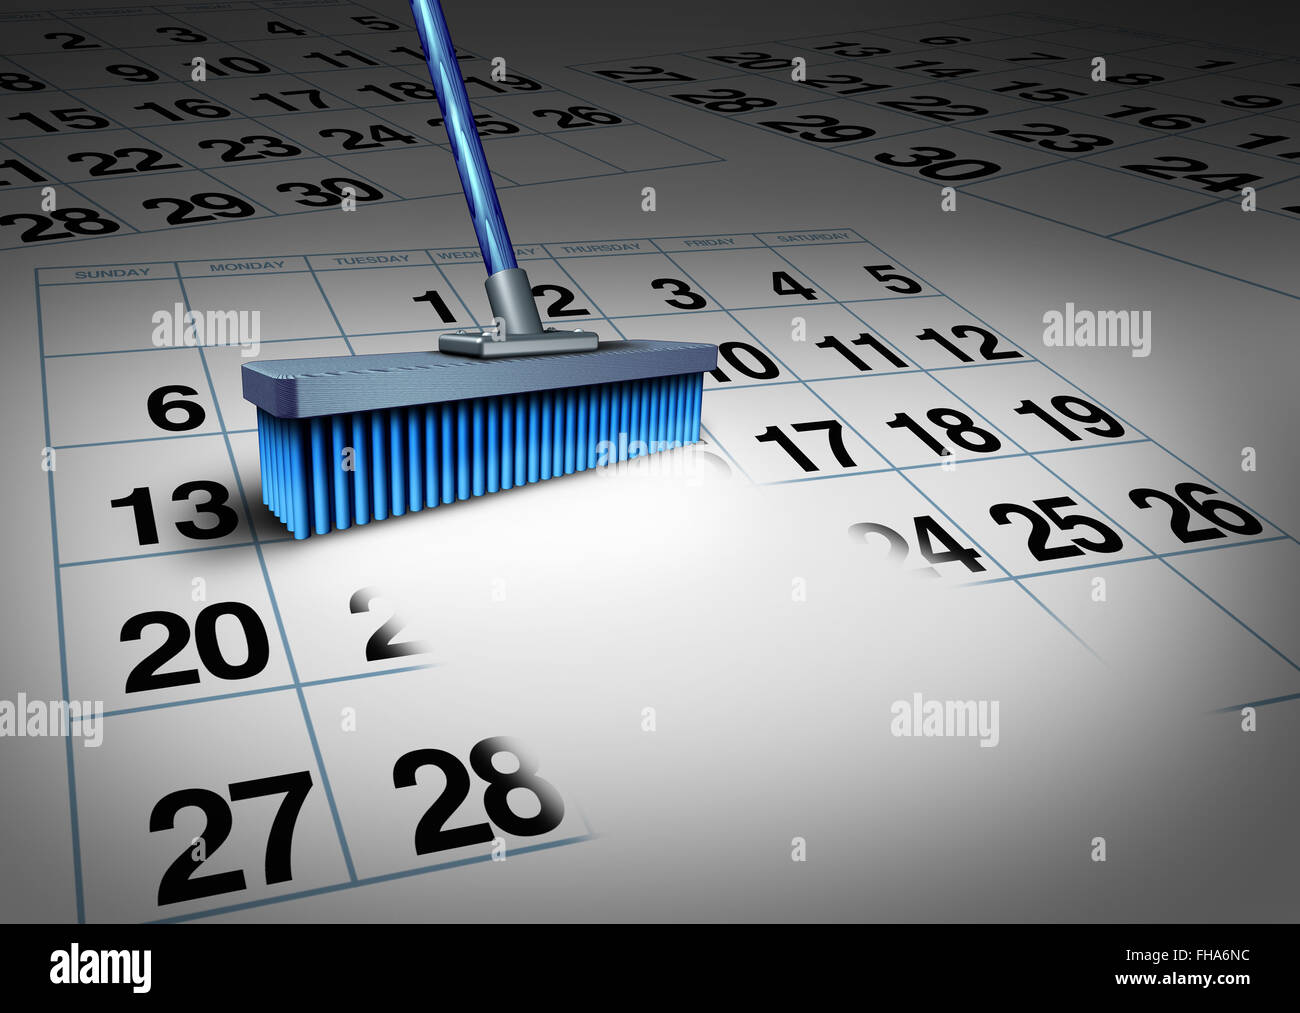 Clear your schedule business concept and reduce a work week symbol as a broom erasing a calendar as a deadline timetable - Stock Image